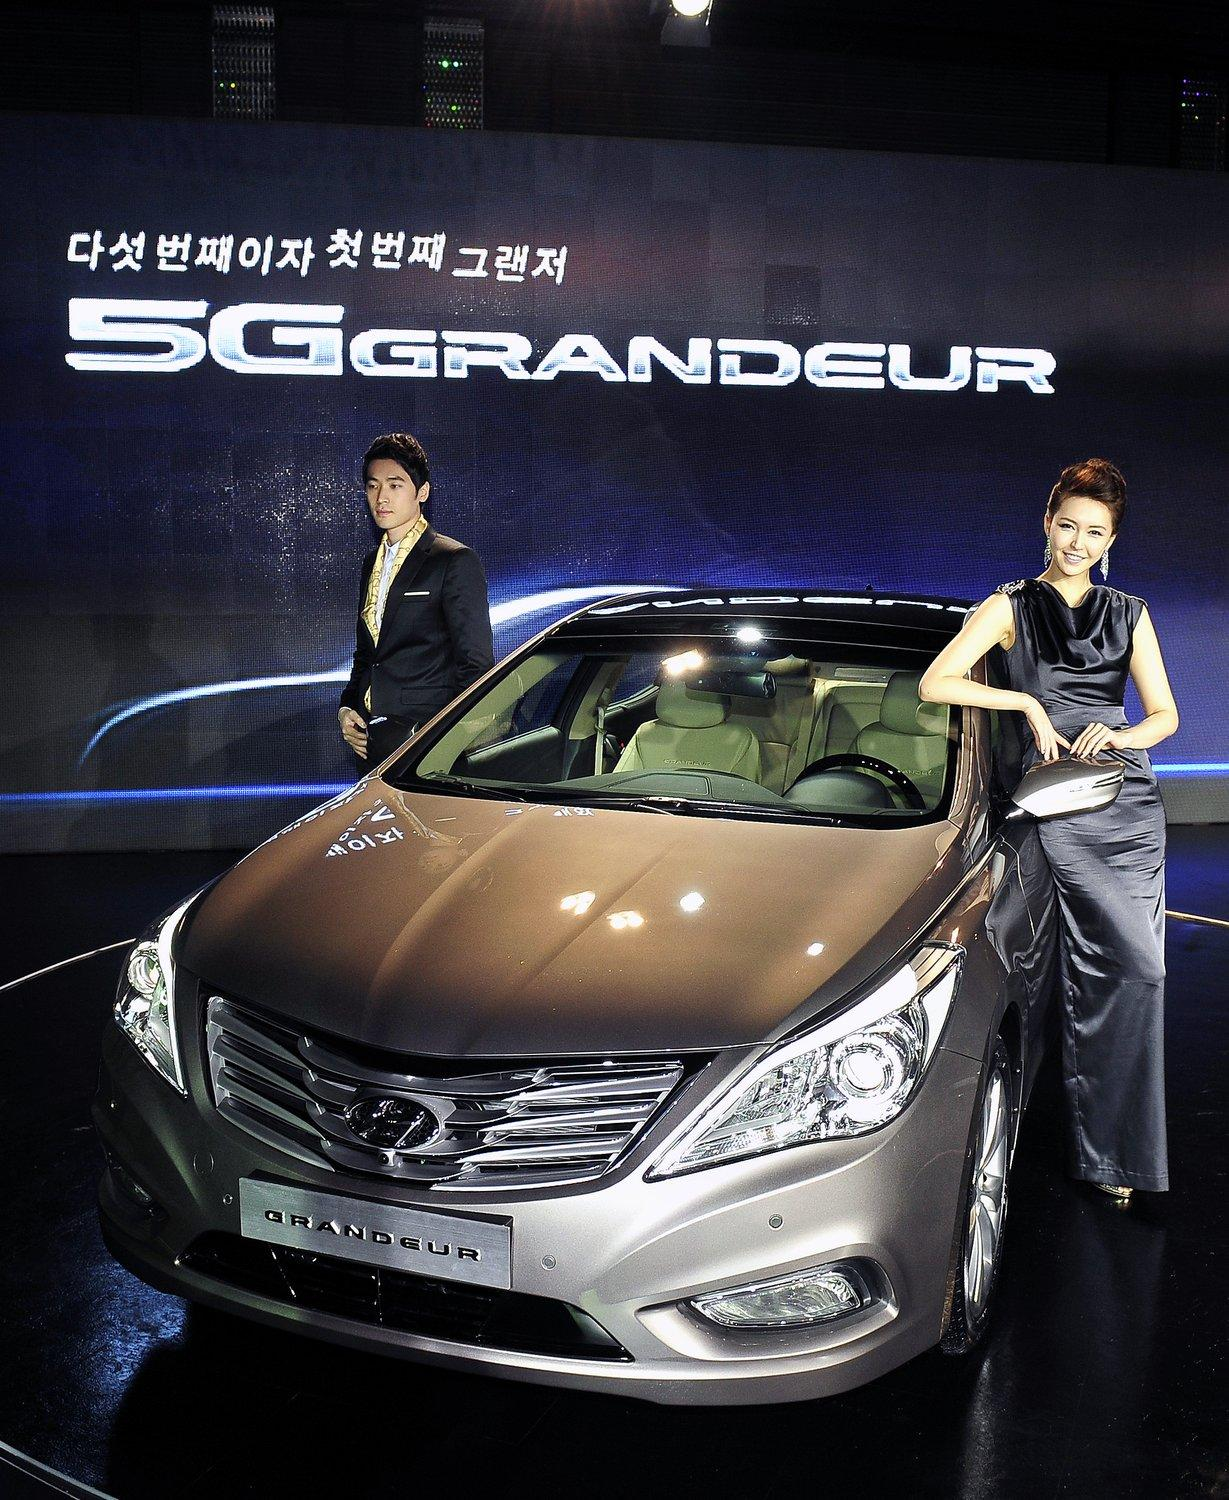 2012 Hyundai Grandeur Picture #3 of 4